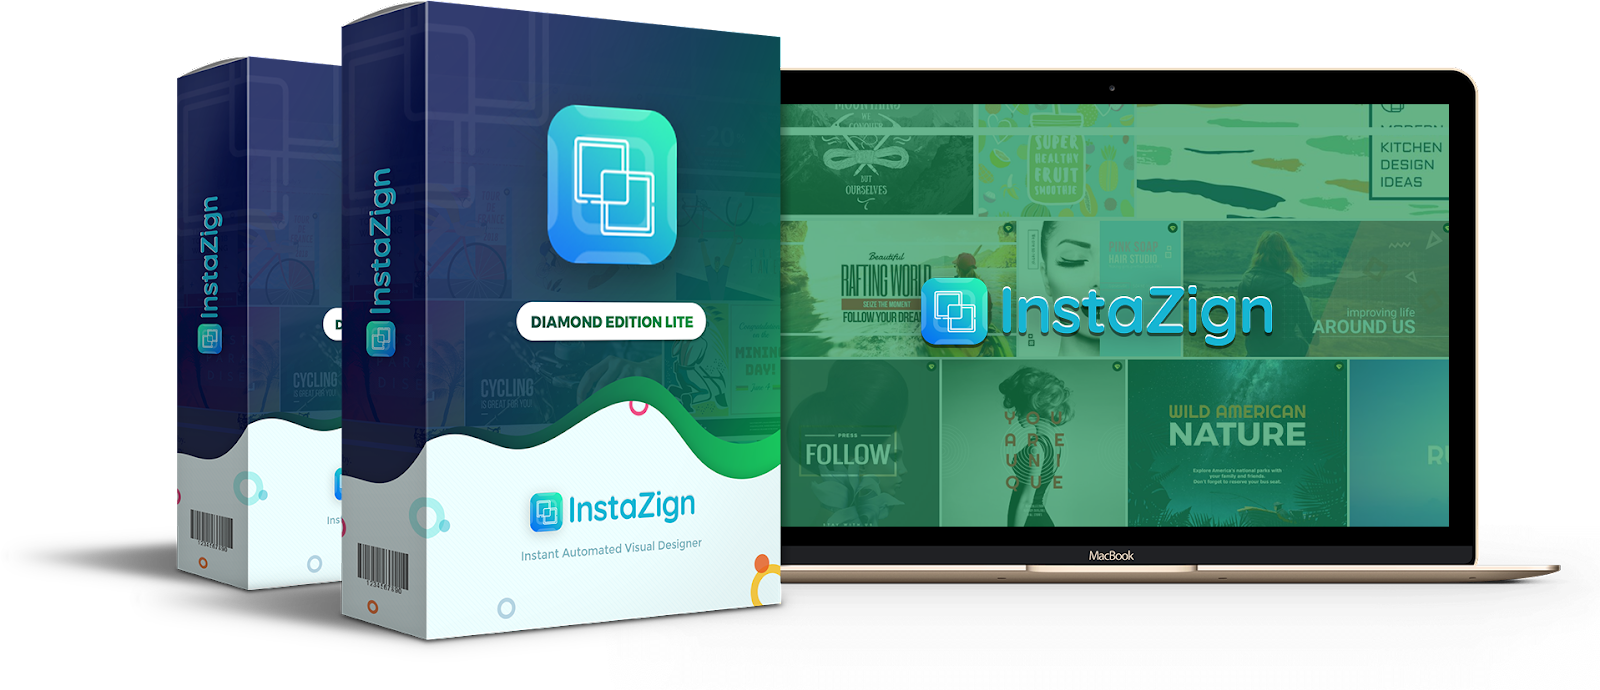 Instazign Review: *Read Here Before Buying this Product* 7